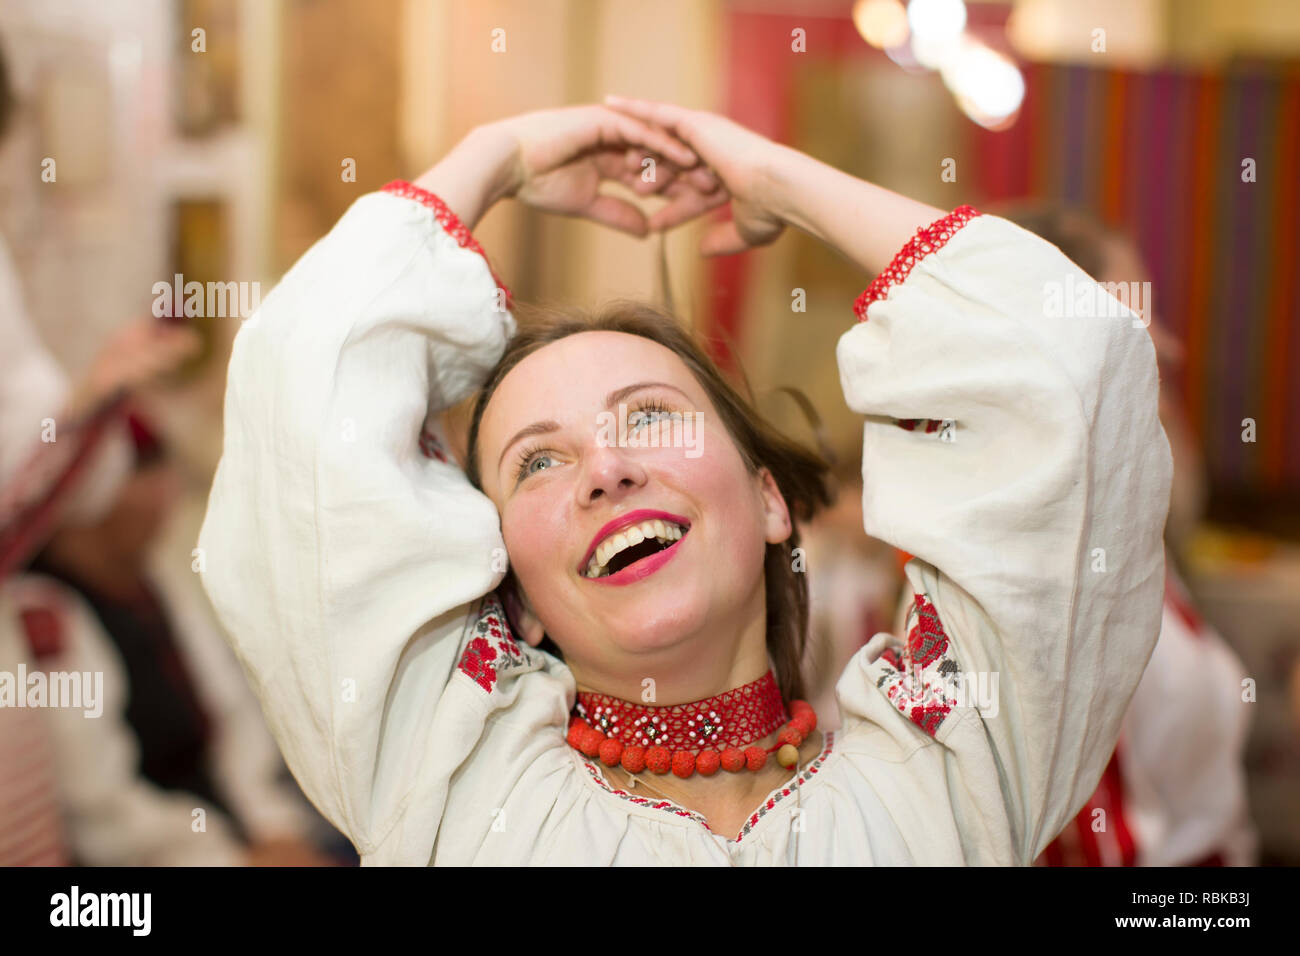 Belarus, Gomel, November 24, 2018. Reconstruction of an ethnic old Belarusian wedding.A woman is dancing in a Slavic national costume. Belarusian girl Stock Photo